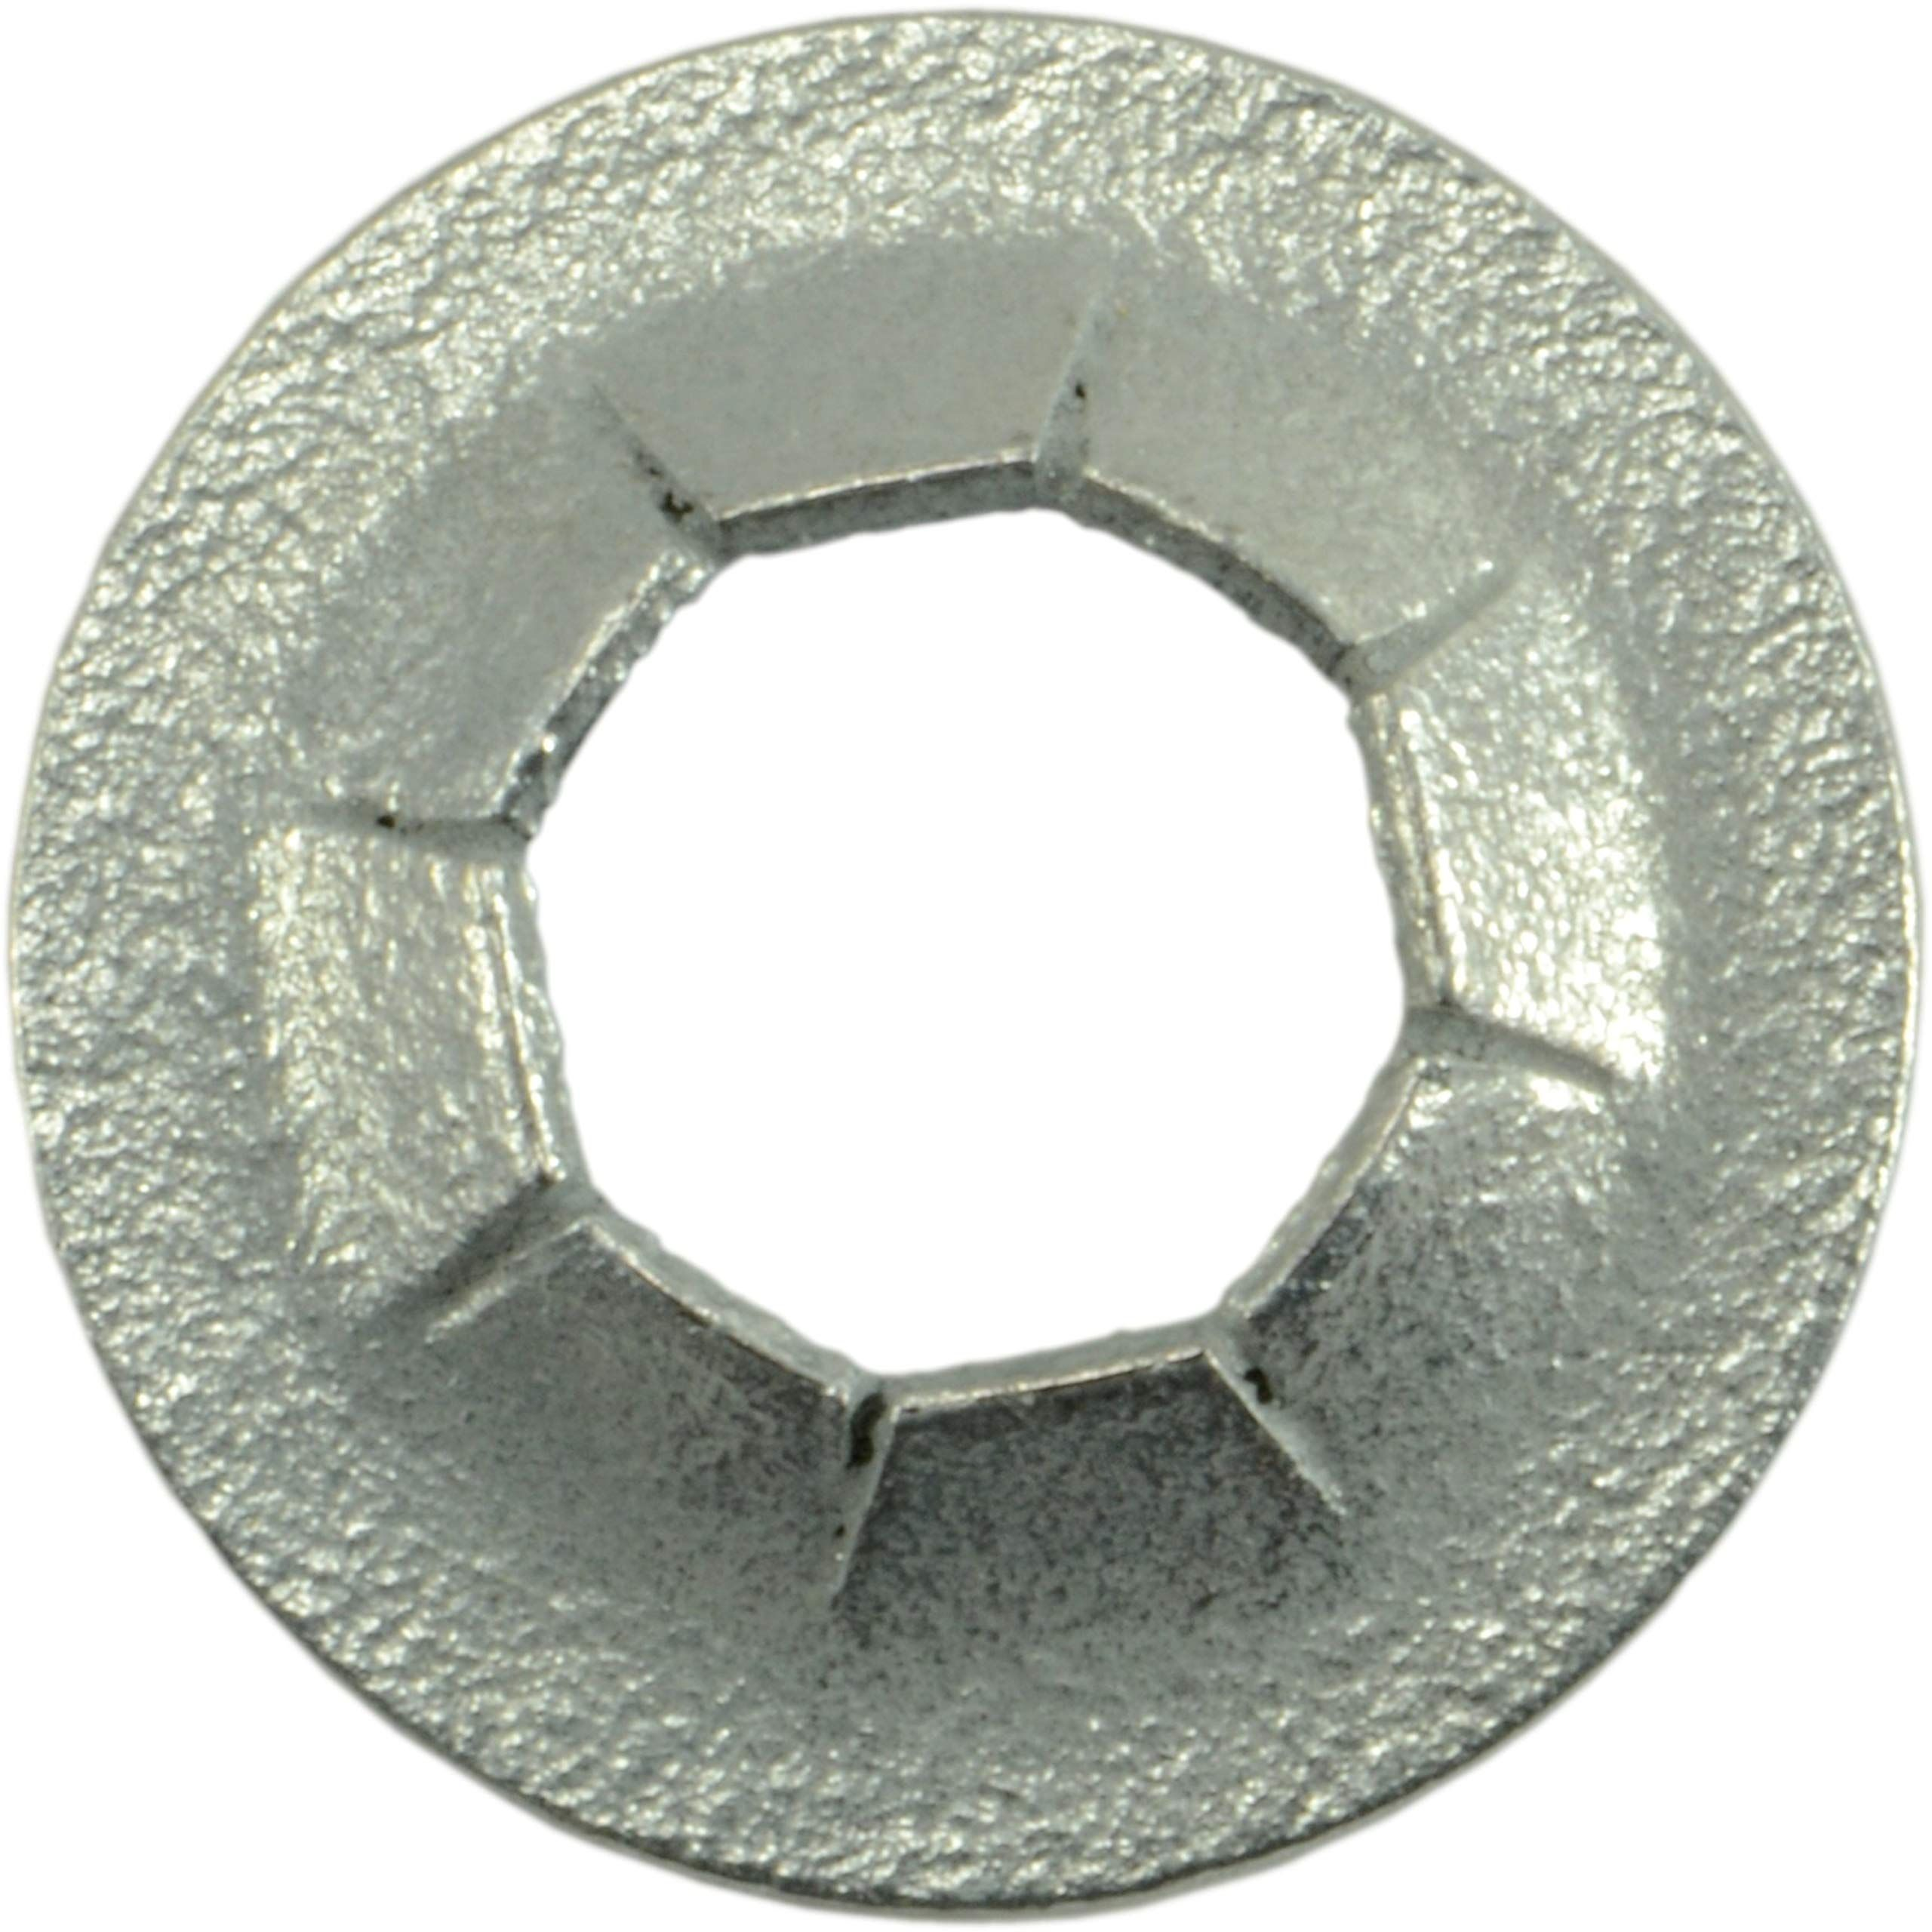 Hard To Find Fastener 014973294861 Pushnut Washers 1 4 Piece 40 Ad Fastener Ad Hard Find Piece Fasteners Zinc Plating Retro Vintage Style